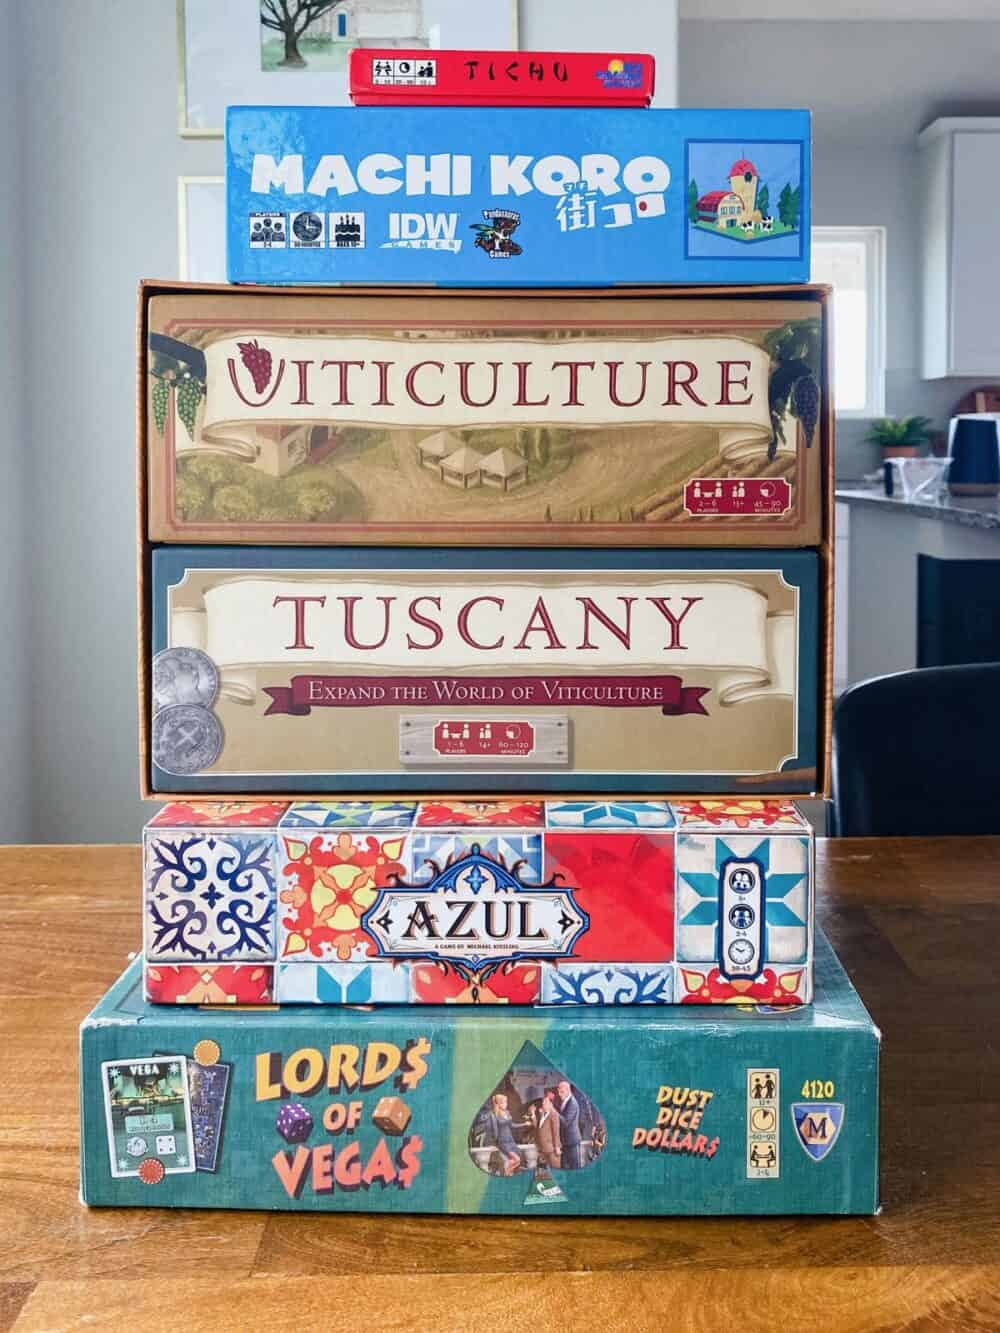 A stack of board games, including Tichu, Machi Koro, Viticulture, Azul, and Lords of Vegas